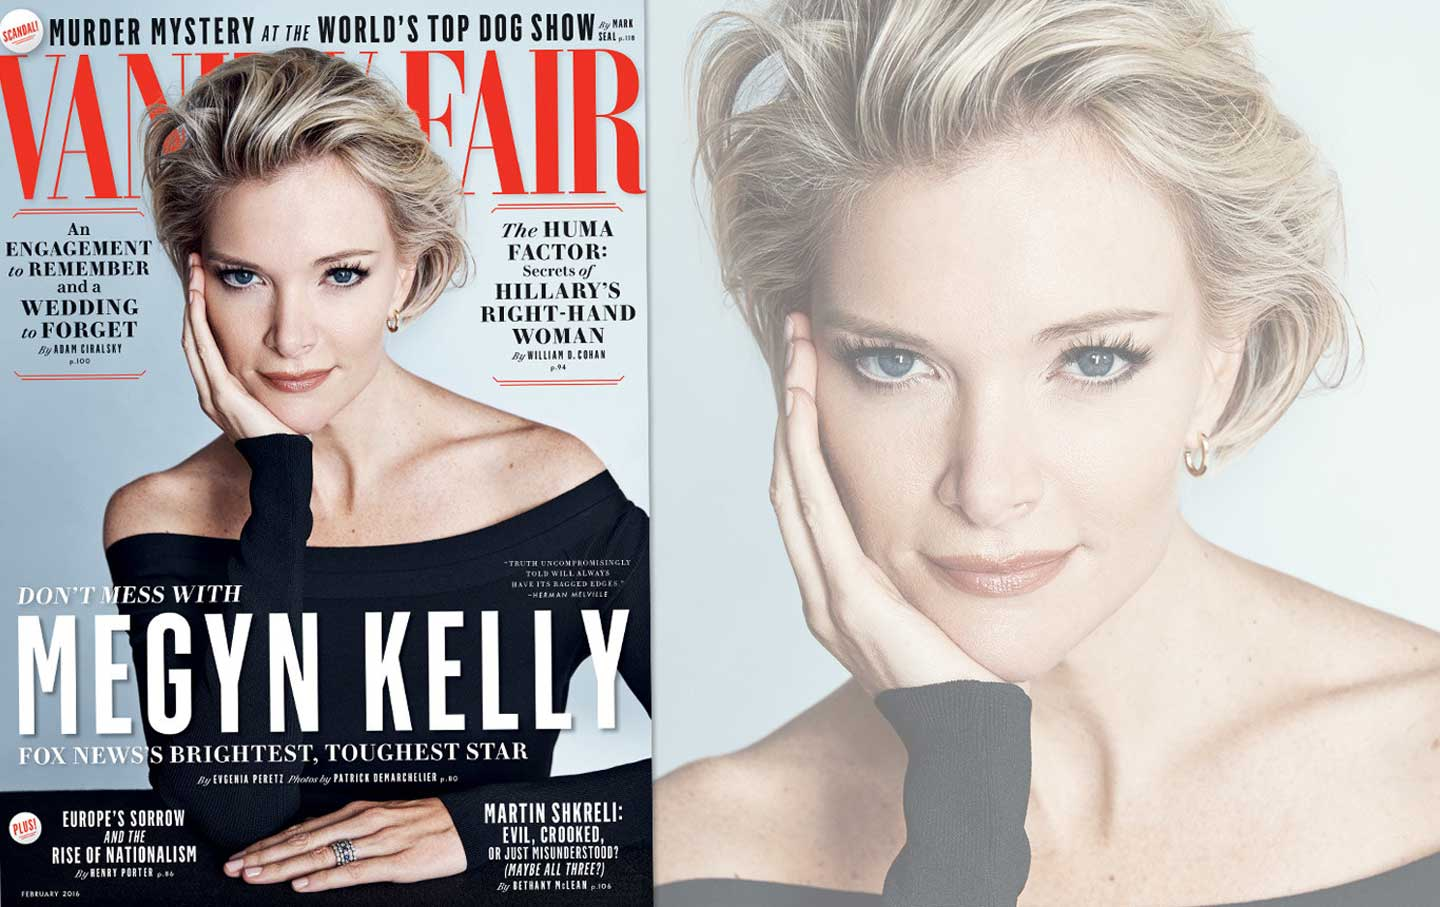 Megyn Kelly on the cover of February's Vanity Fair